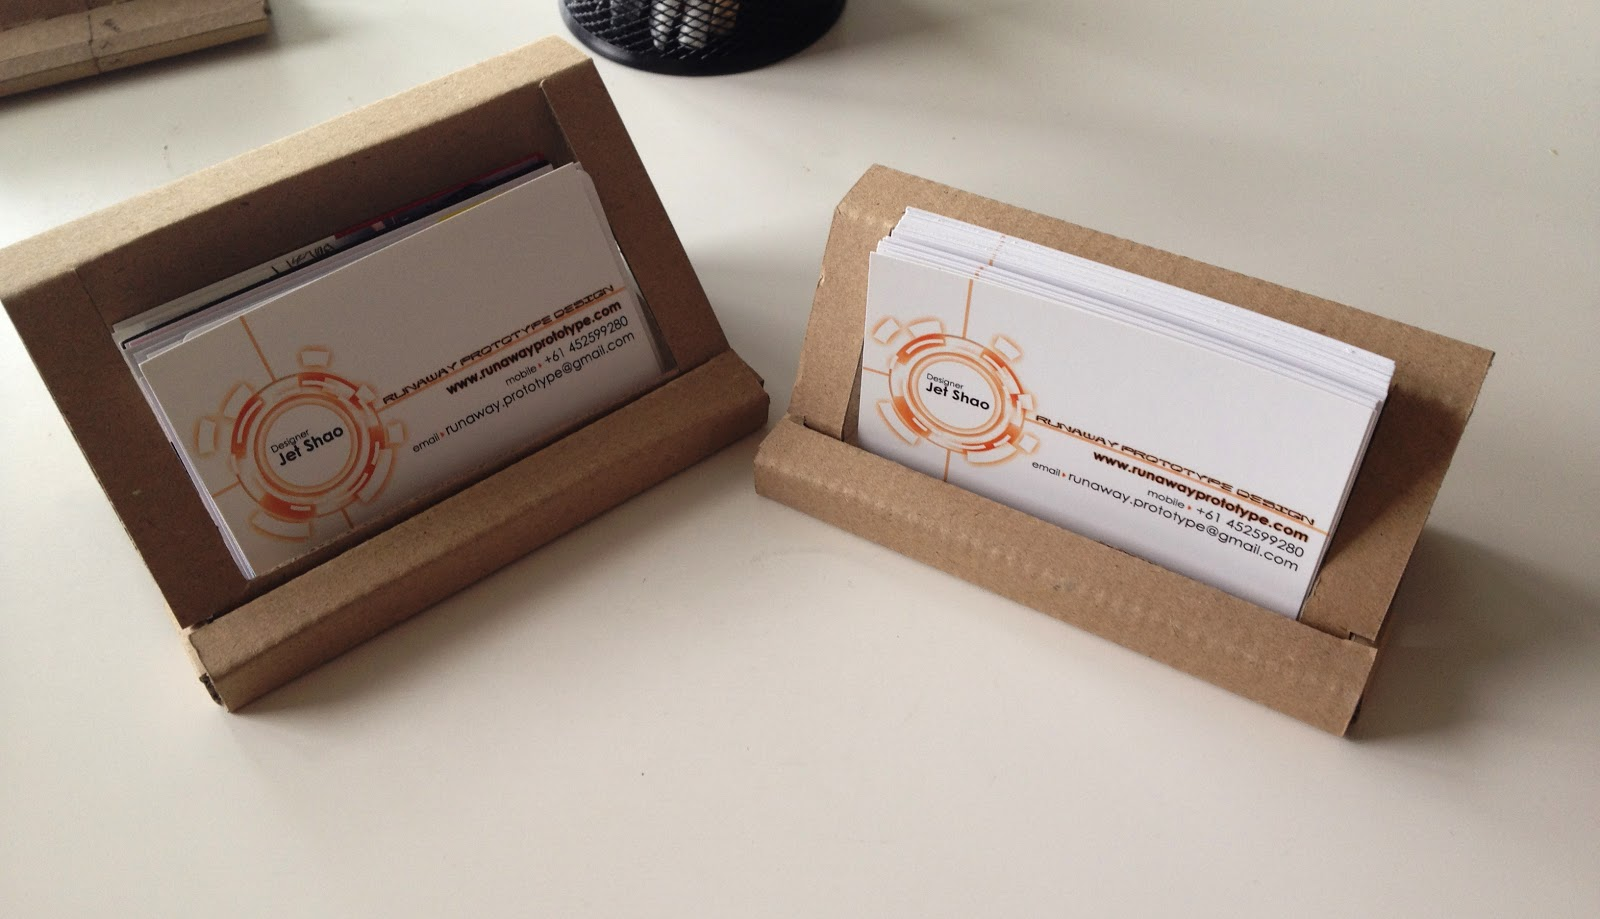 Runaway prototype design cardboard business card holder reloaded developed the cardboard business card holder further these new holders are more stable simpler to assemble and come in 2 different sizes flashek Gallery